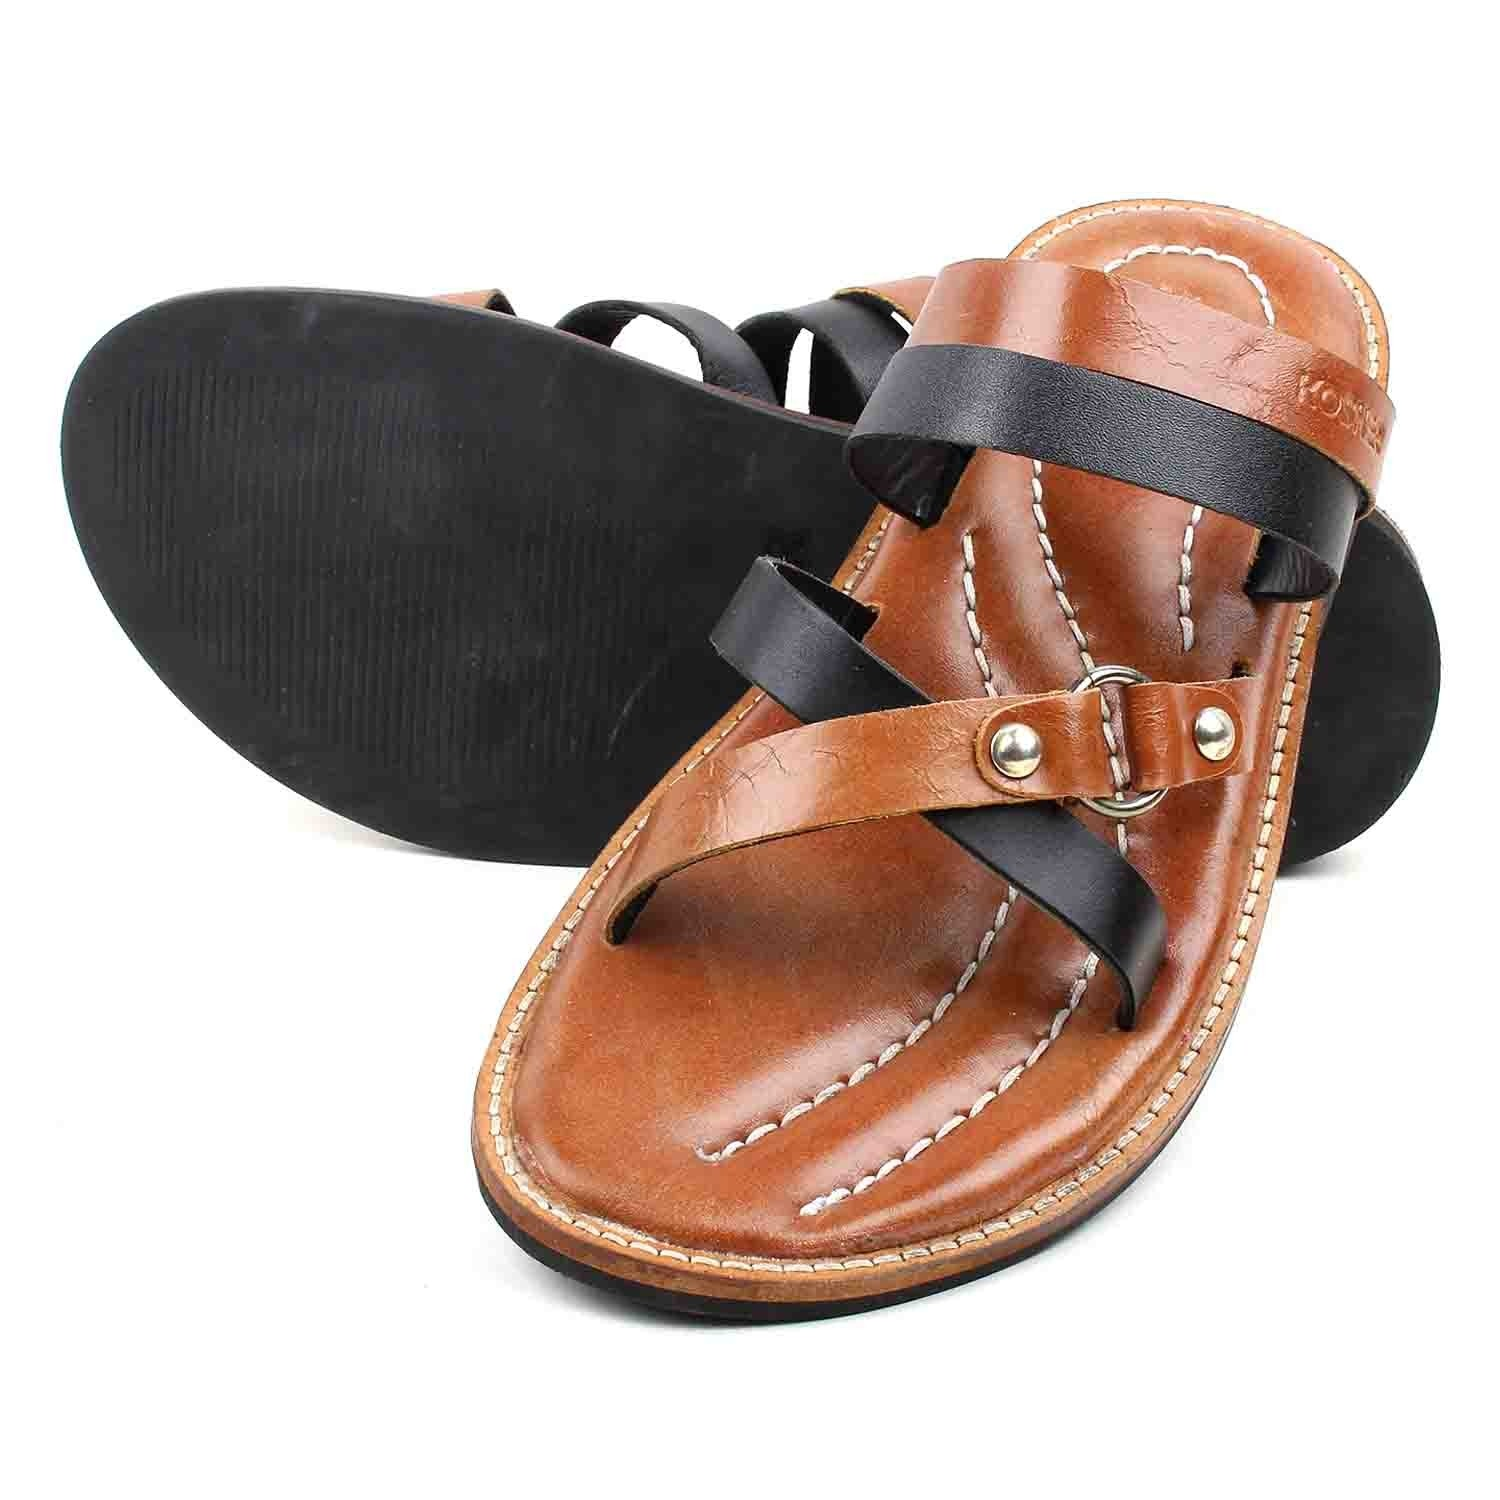 Sandal & Slipper Blk Tan